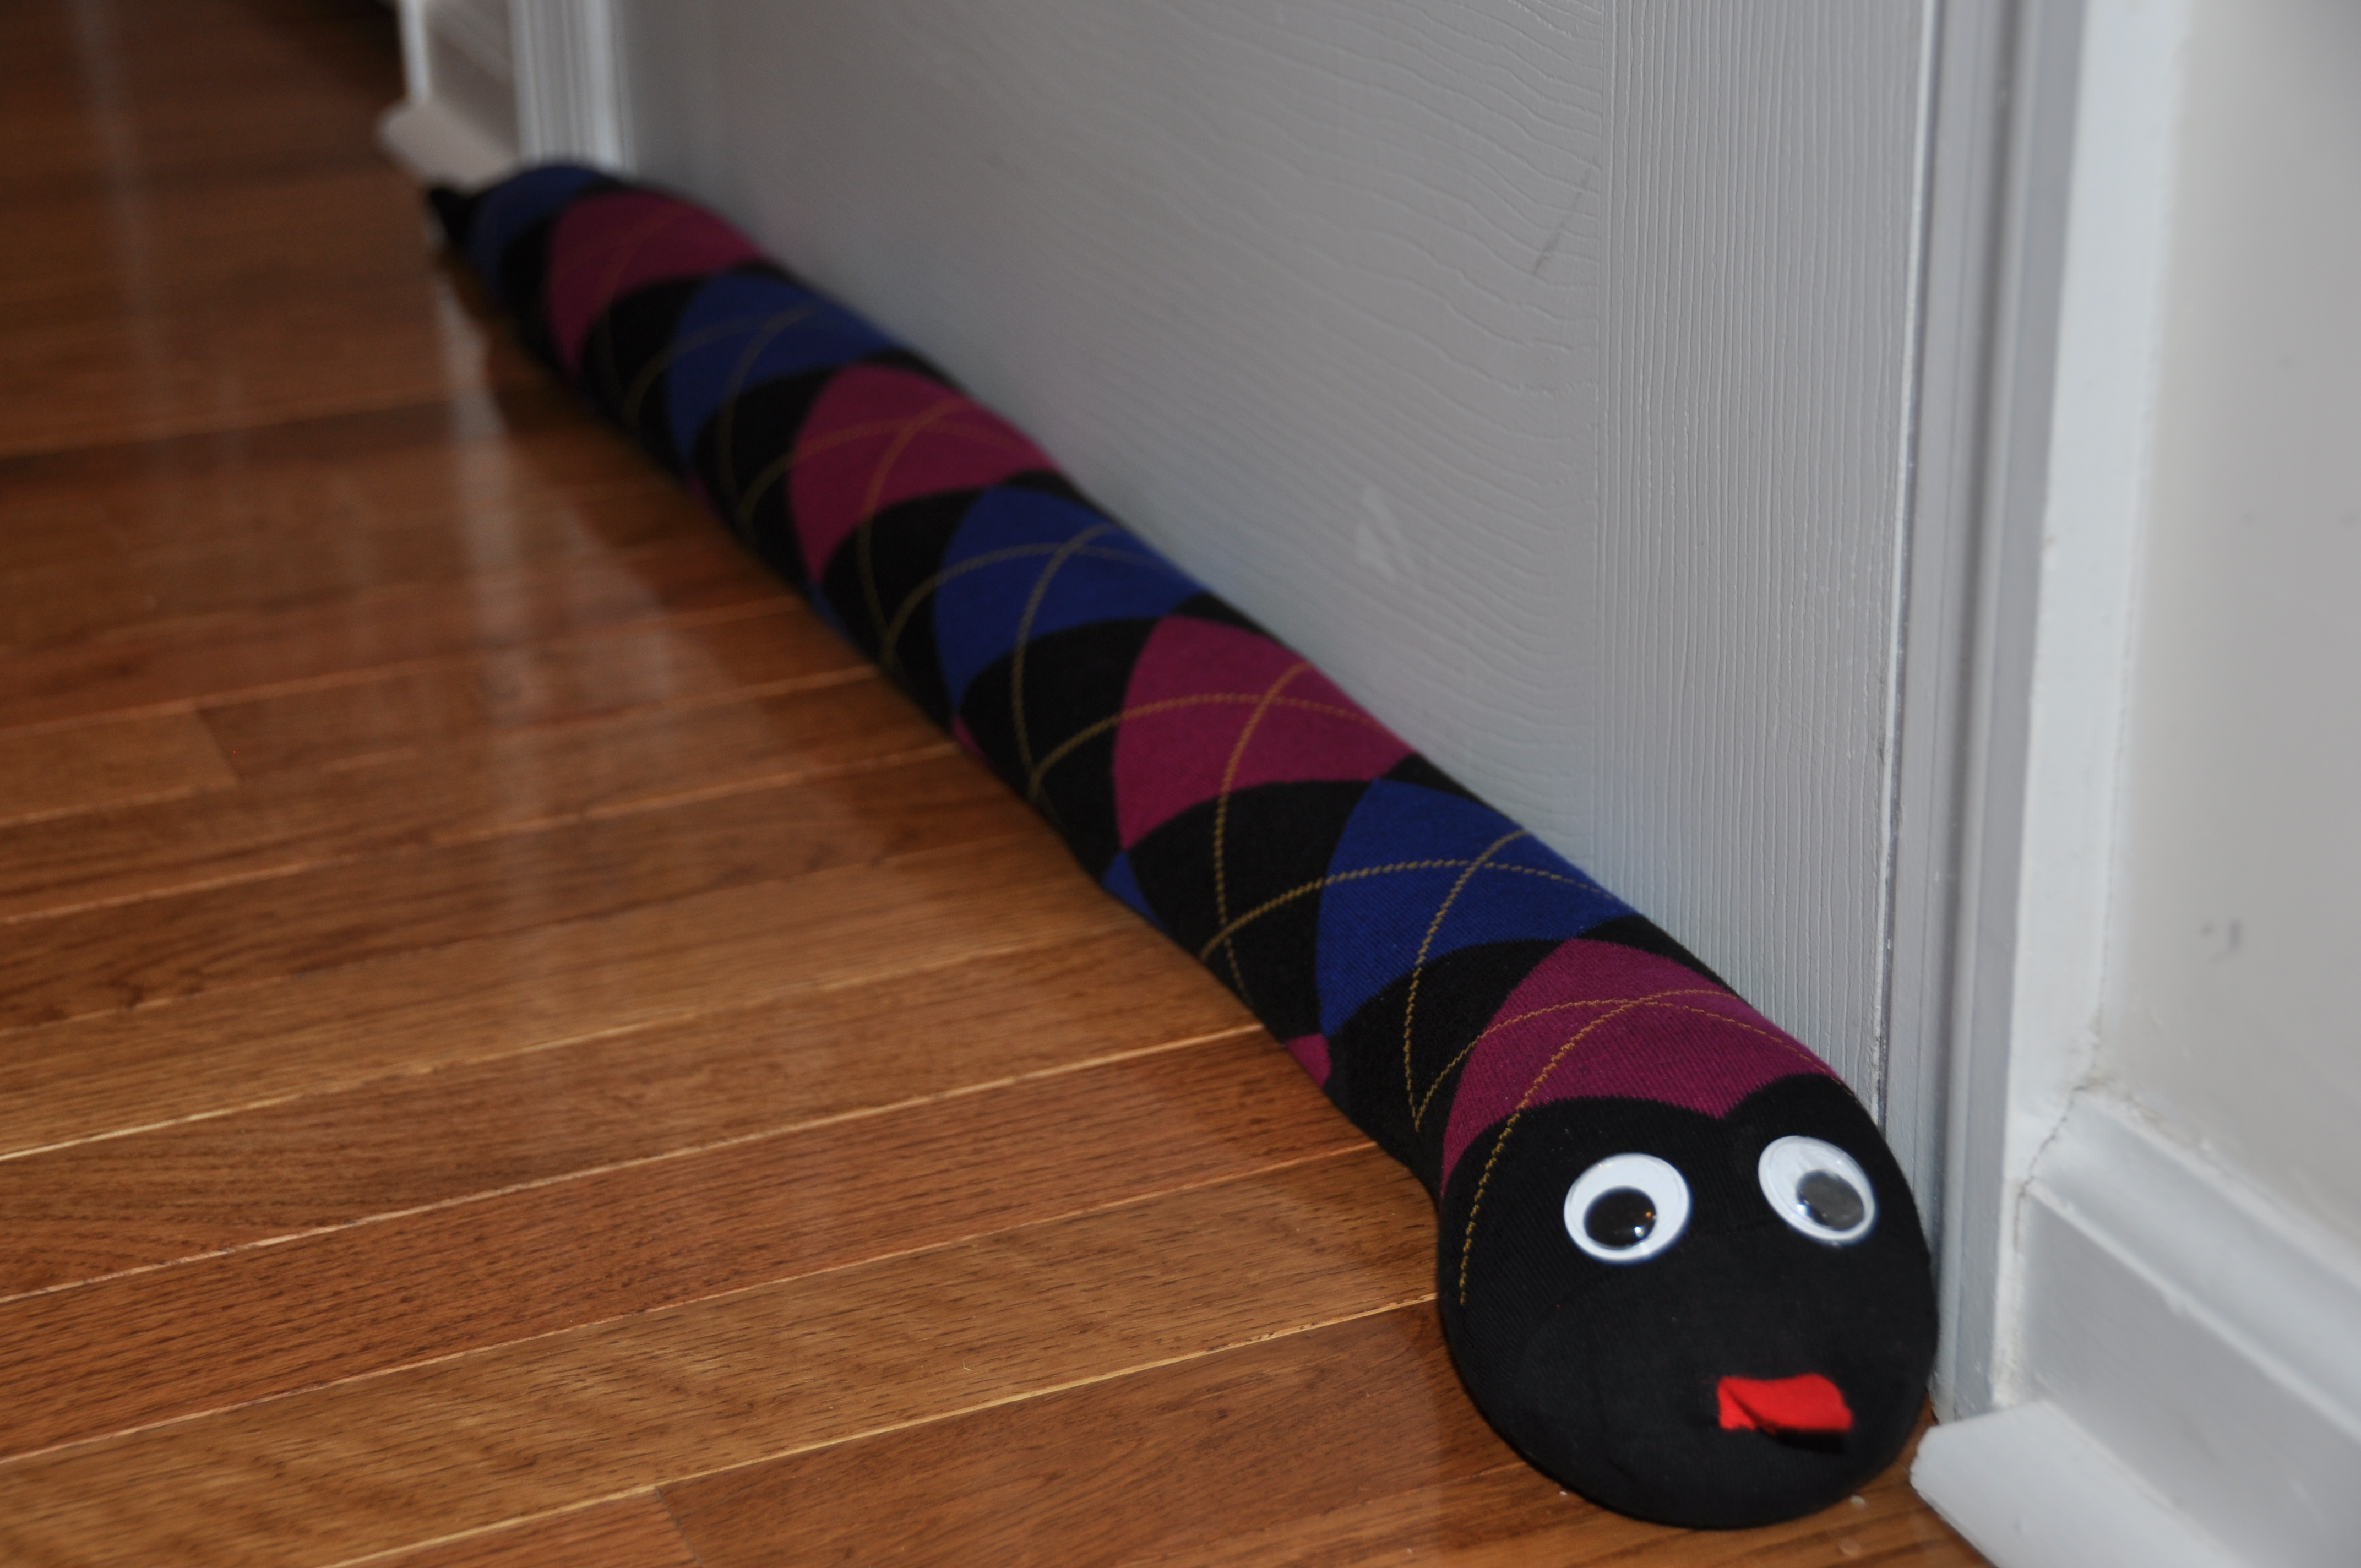 Door draft stoppers, aka draft snakes, can save money on heating bills, as well as reduce pollution. See examples of the cutest draft snakes around from crafty people.